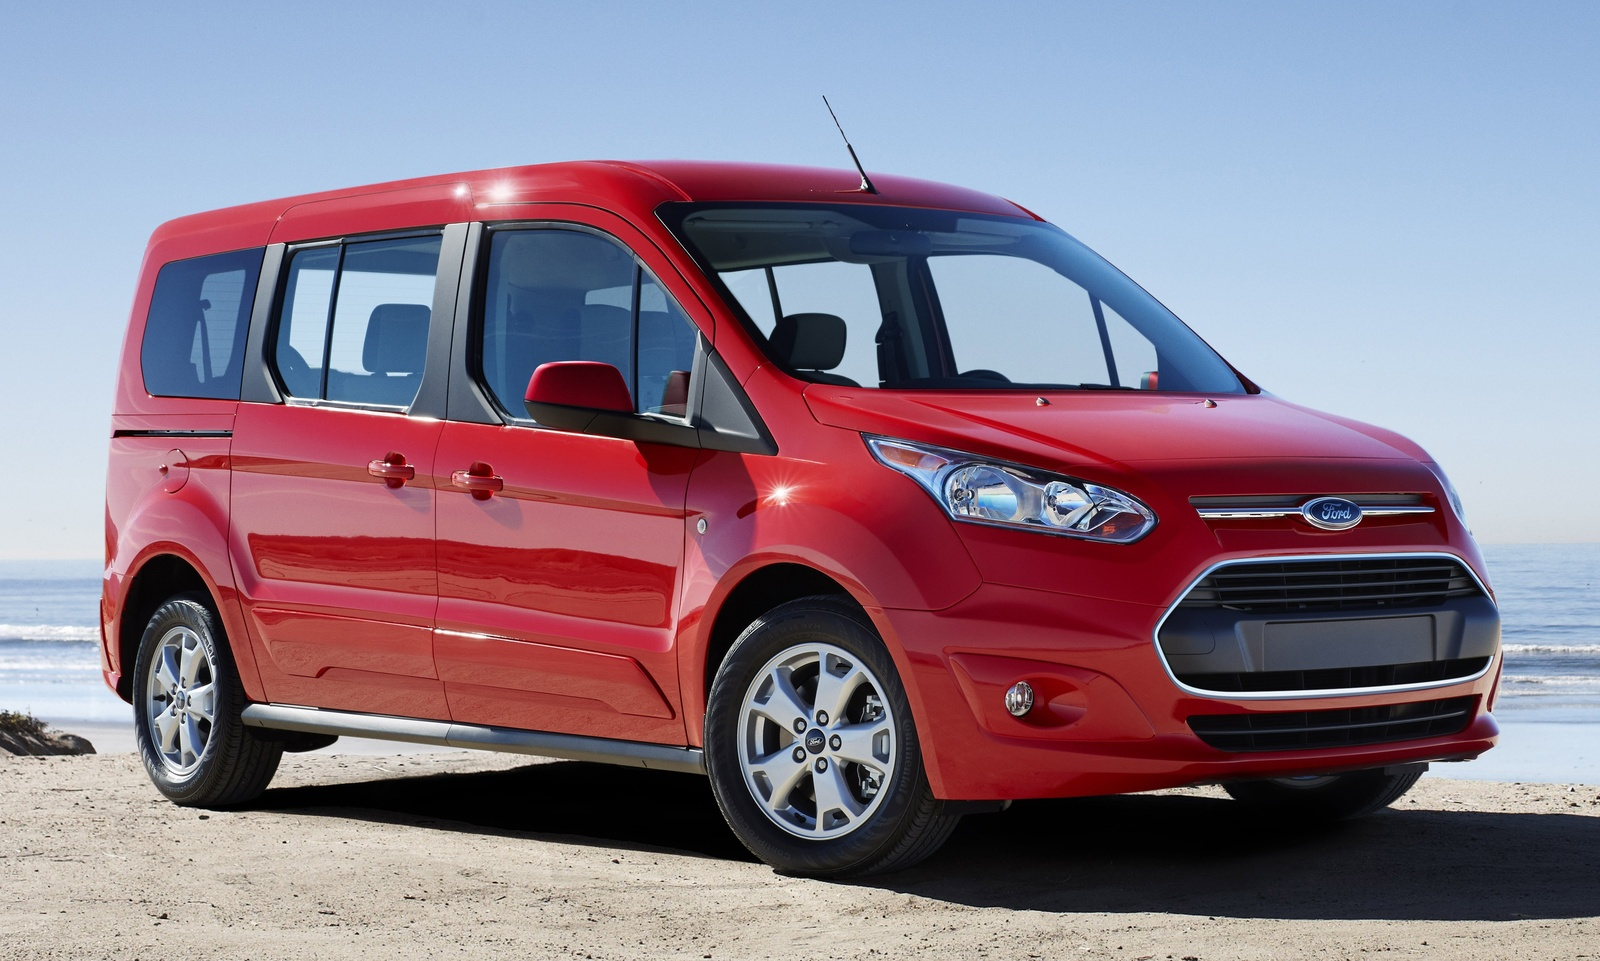 2016 Ford Transit >> 2015 / 2016 Ford Transit Connect for Sale in your area - CarGurus